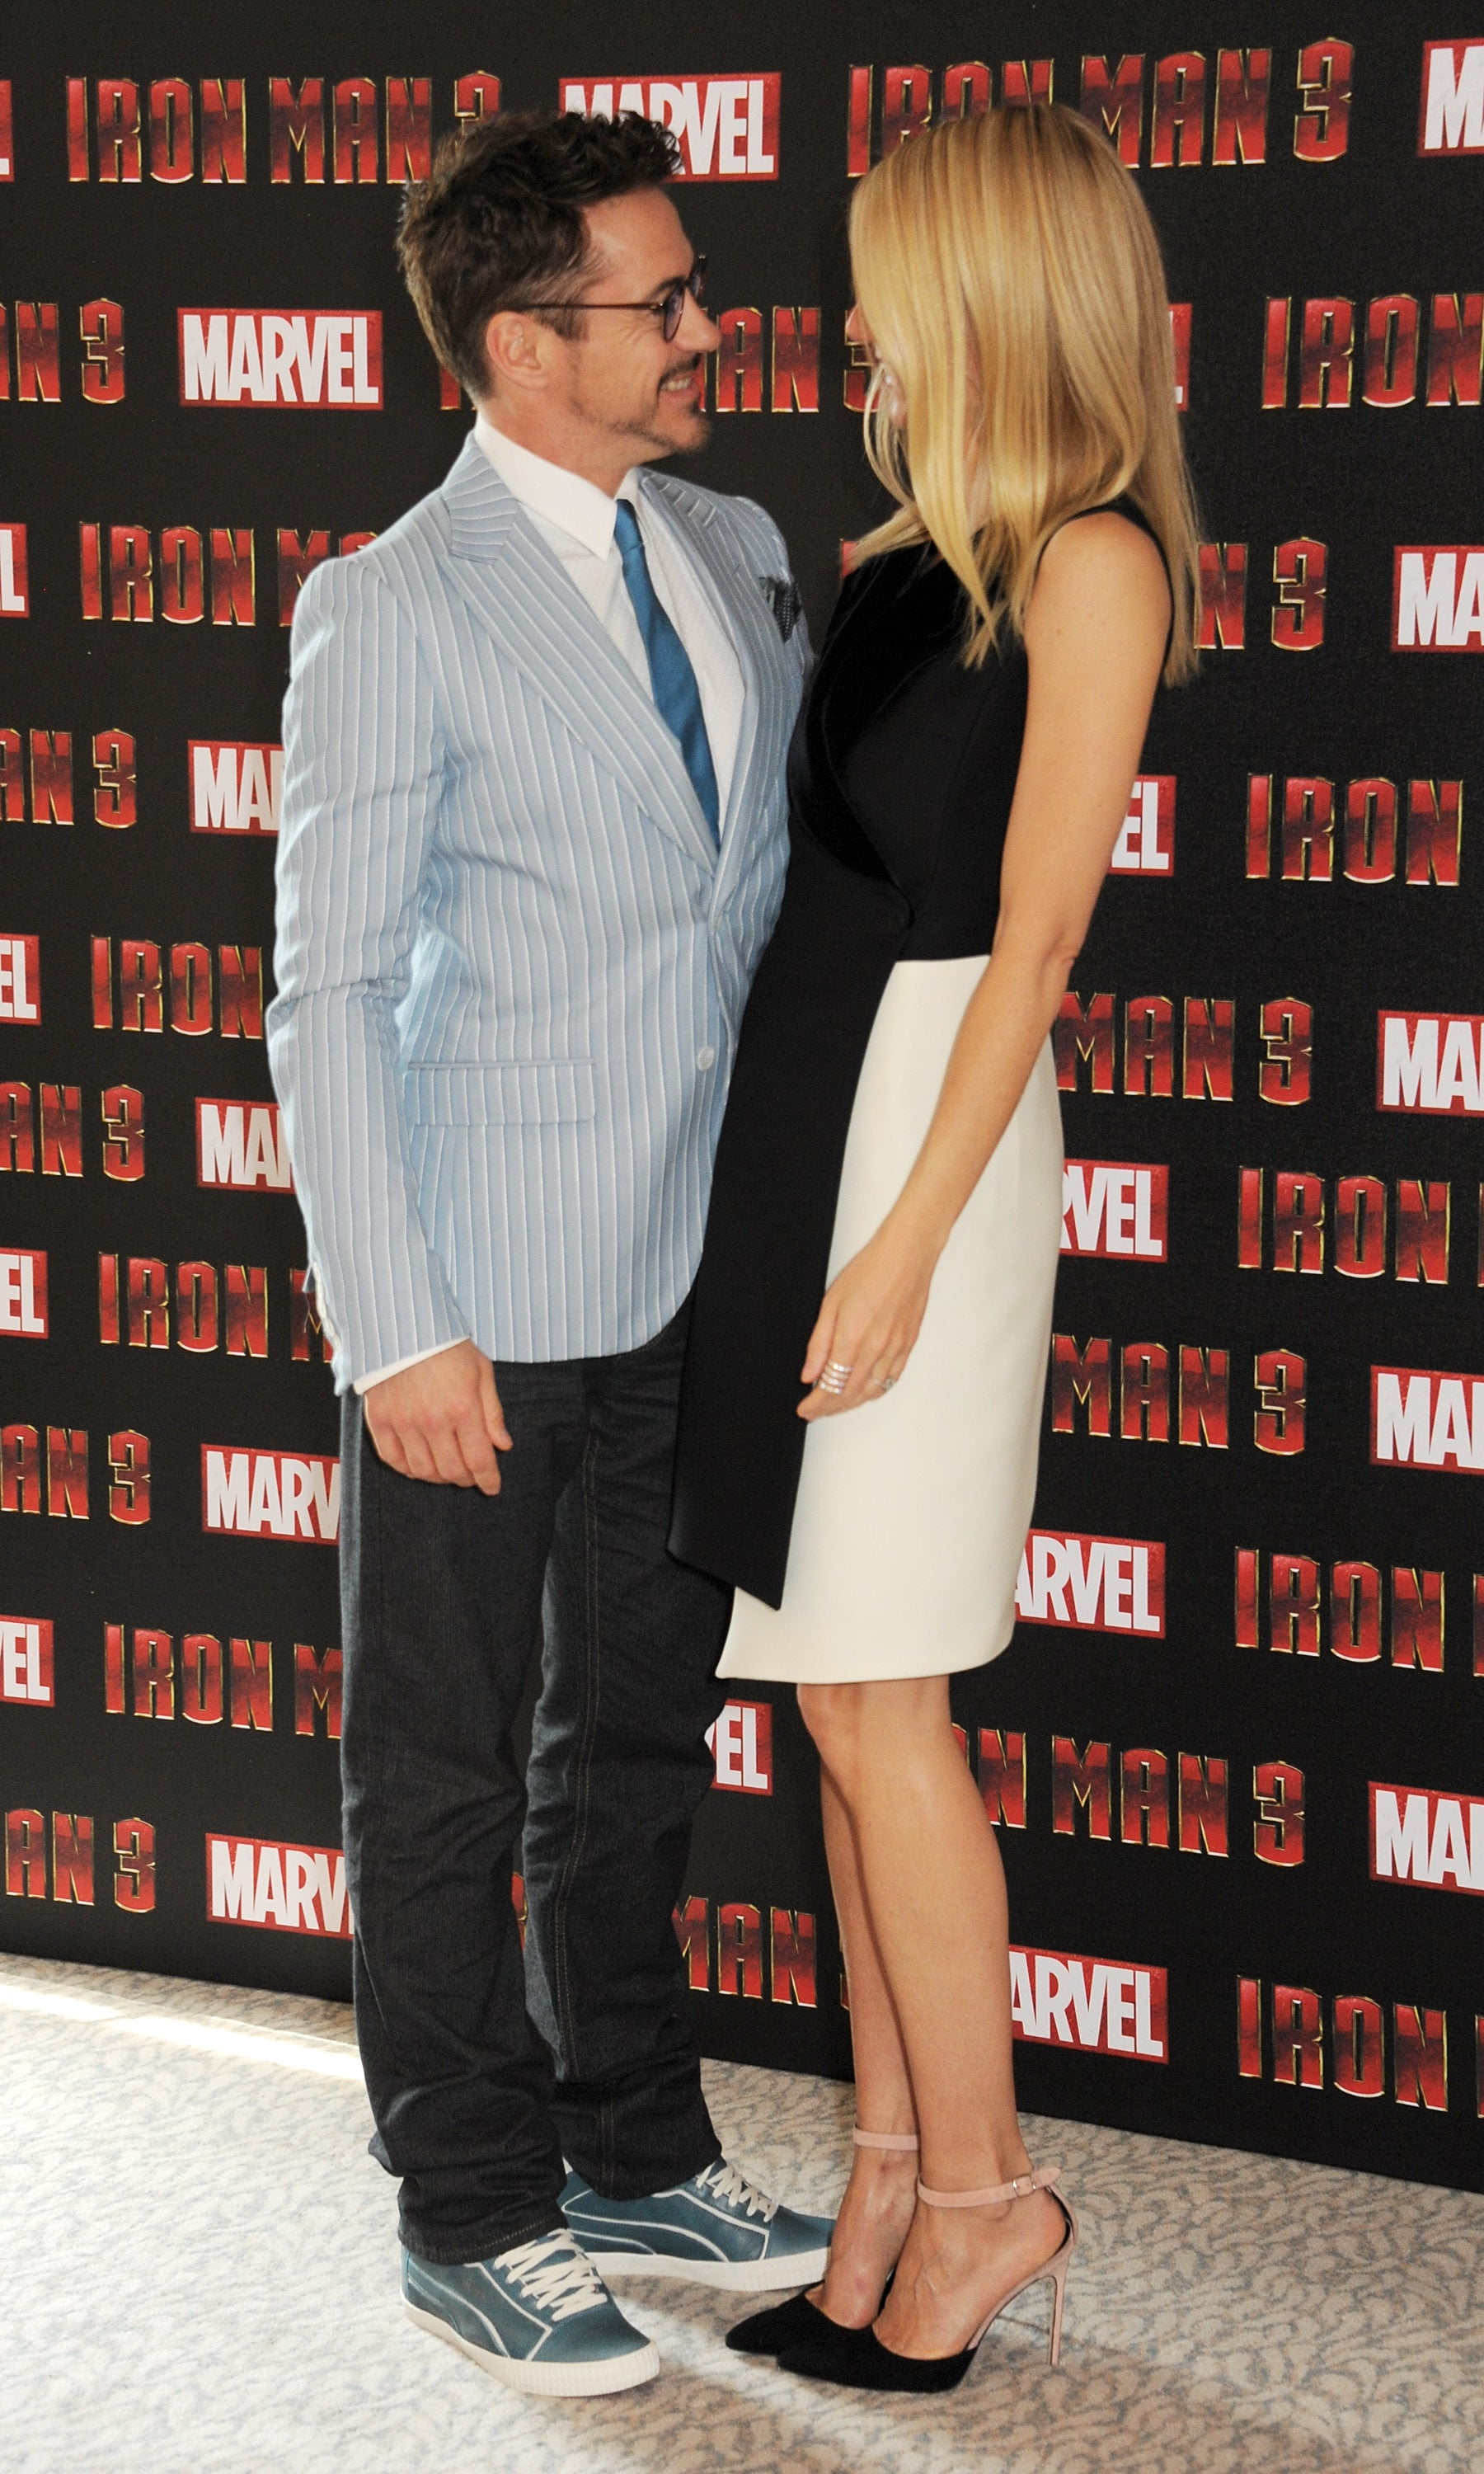 Gwyneth Paltrow and Robert Downey Jr. posed together for an Iron Man 3 photocall in the UK.